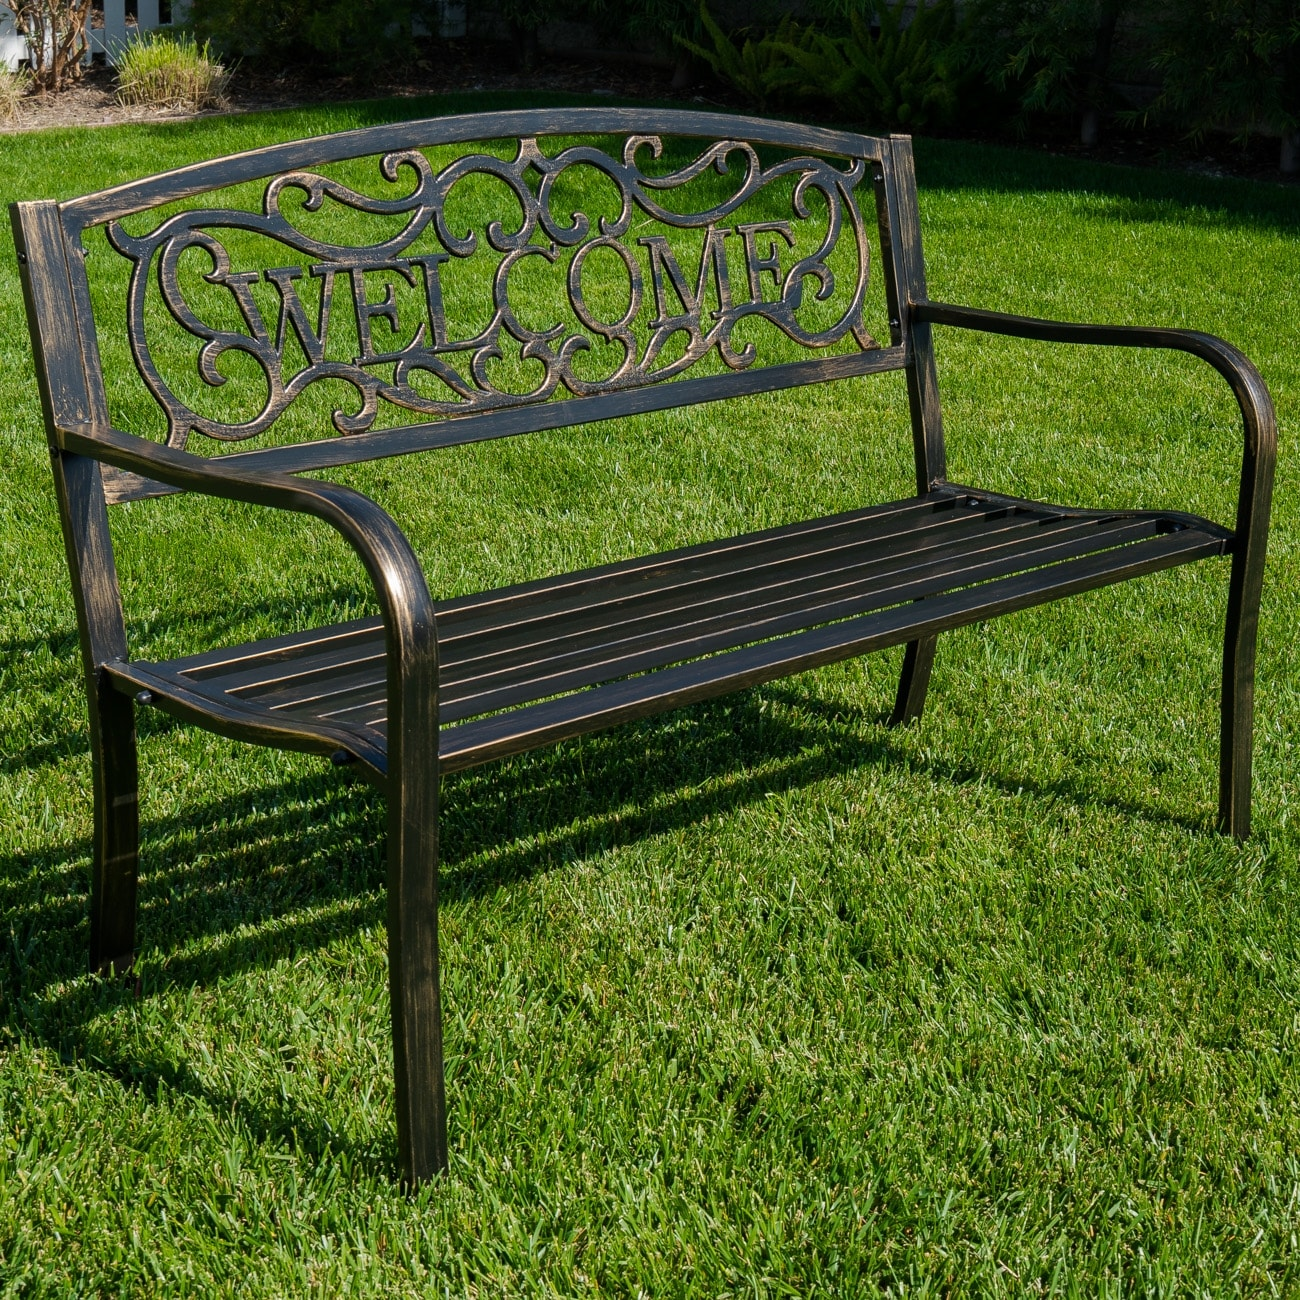 Garden Seats Benches Buy Black Outdoor Benches Online At Overstock Our Best Patio